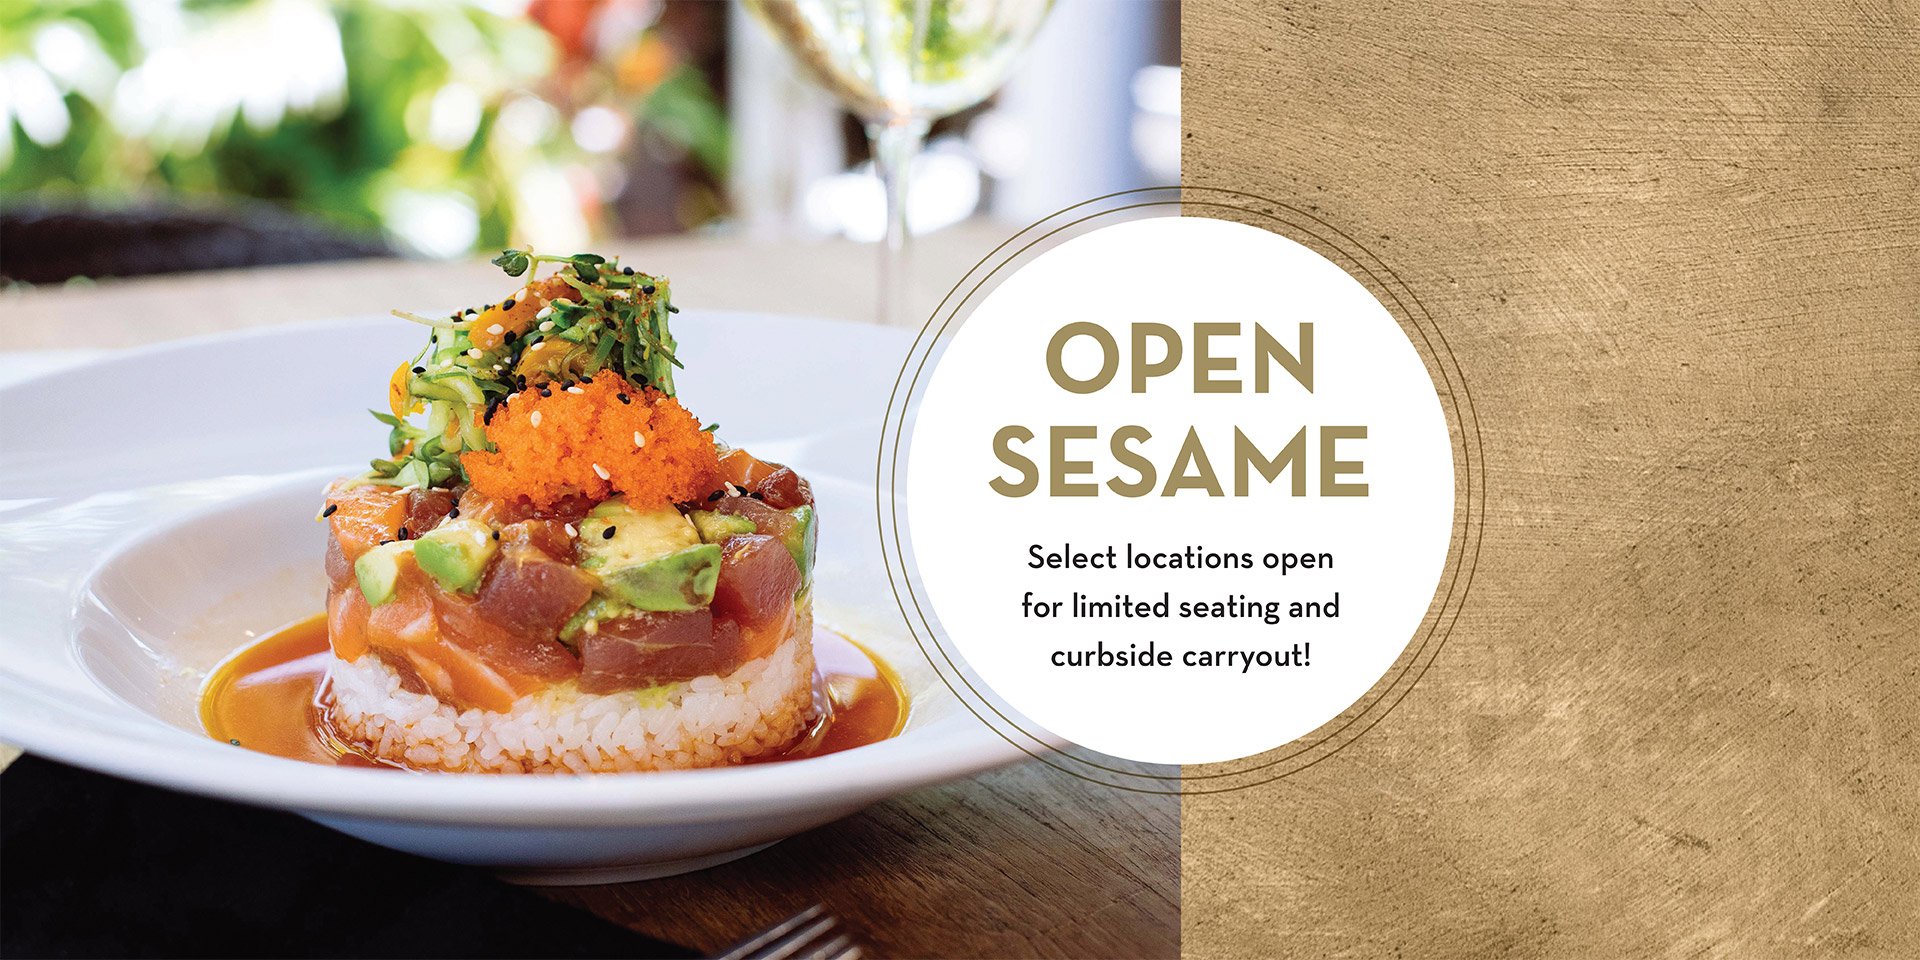 Open sesame. Select locations open for limited seating and curbside takeout. View locations.